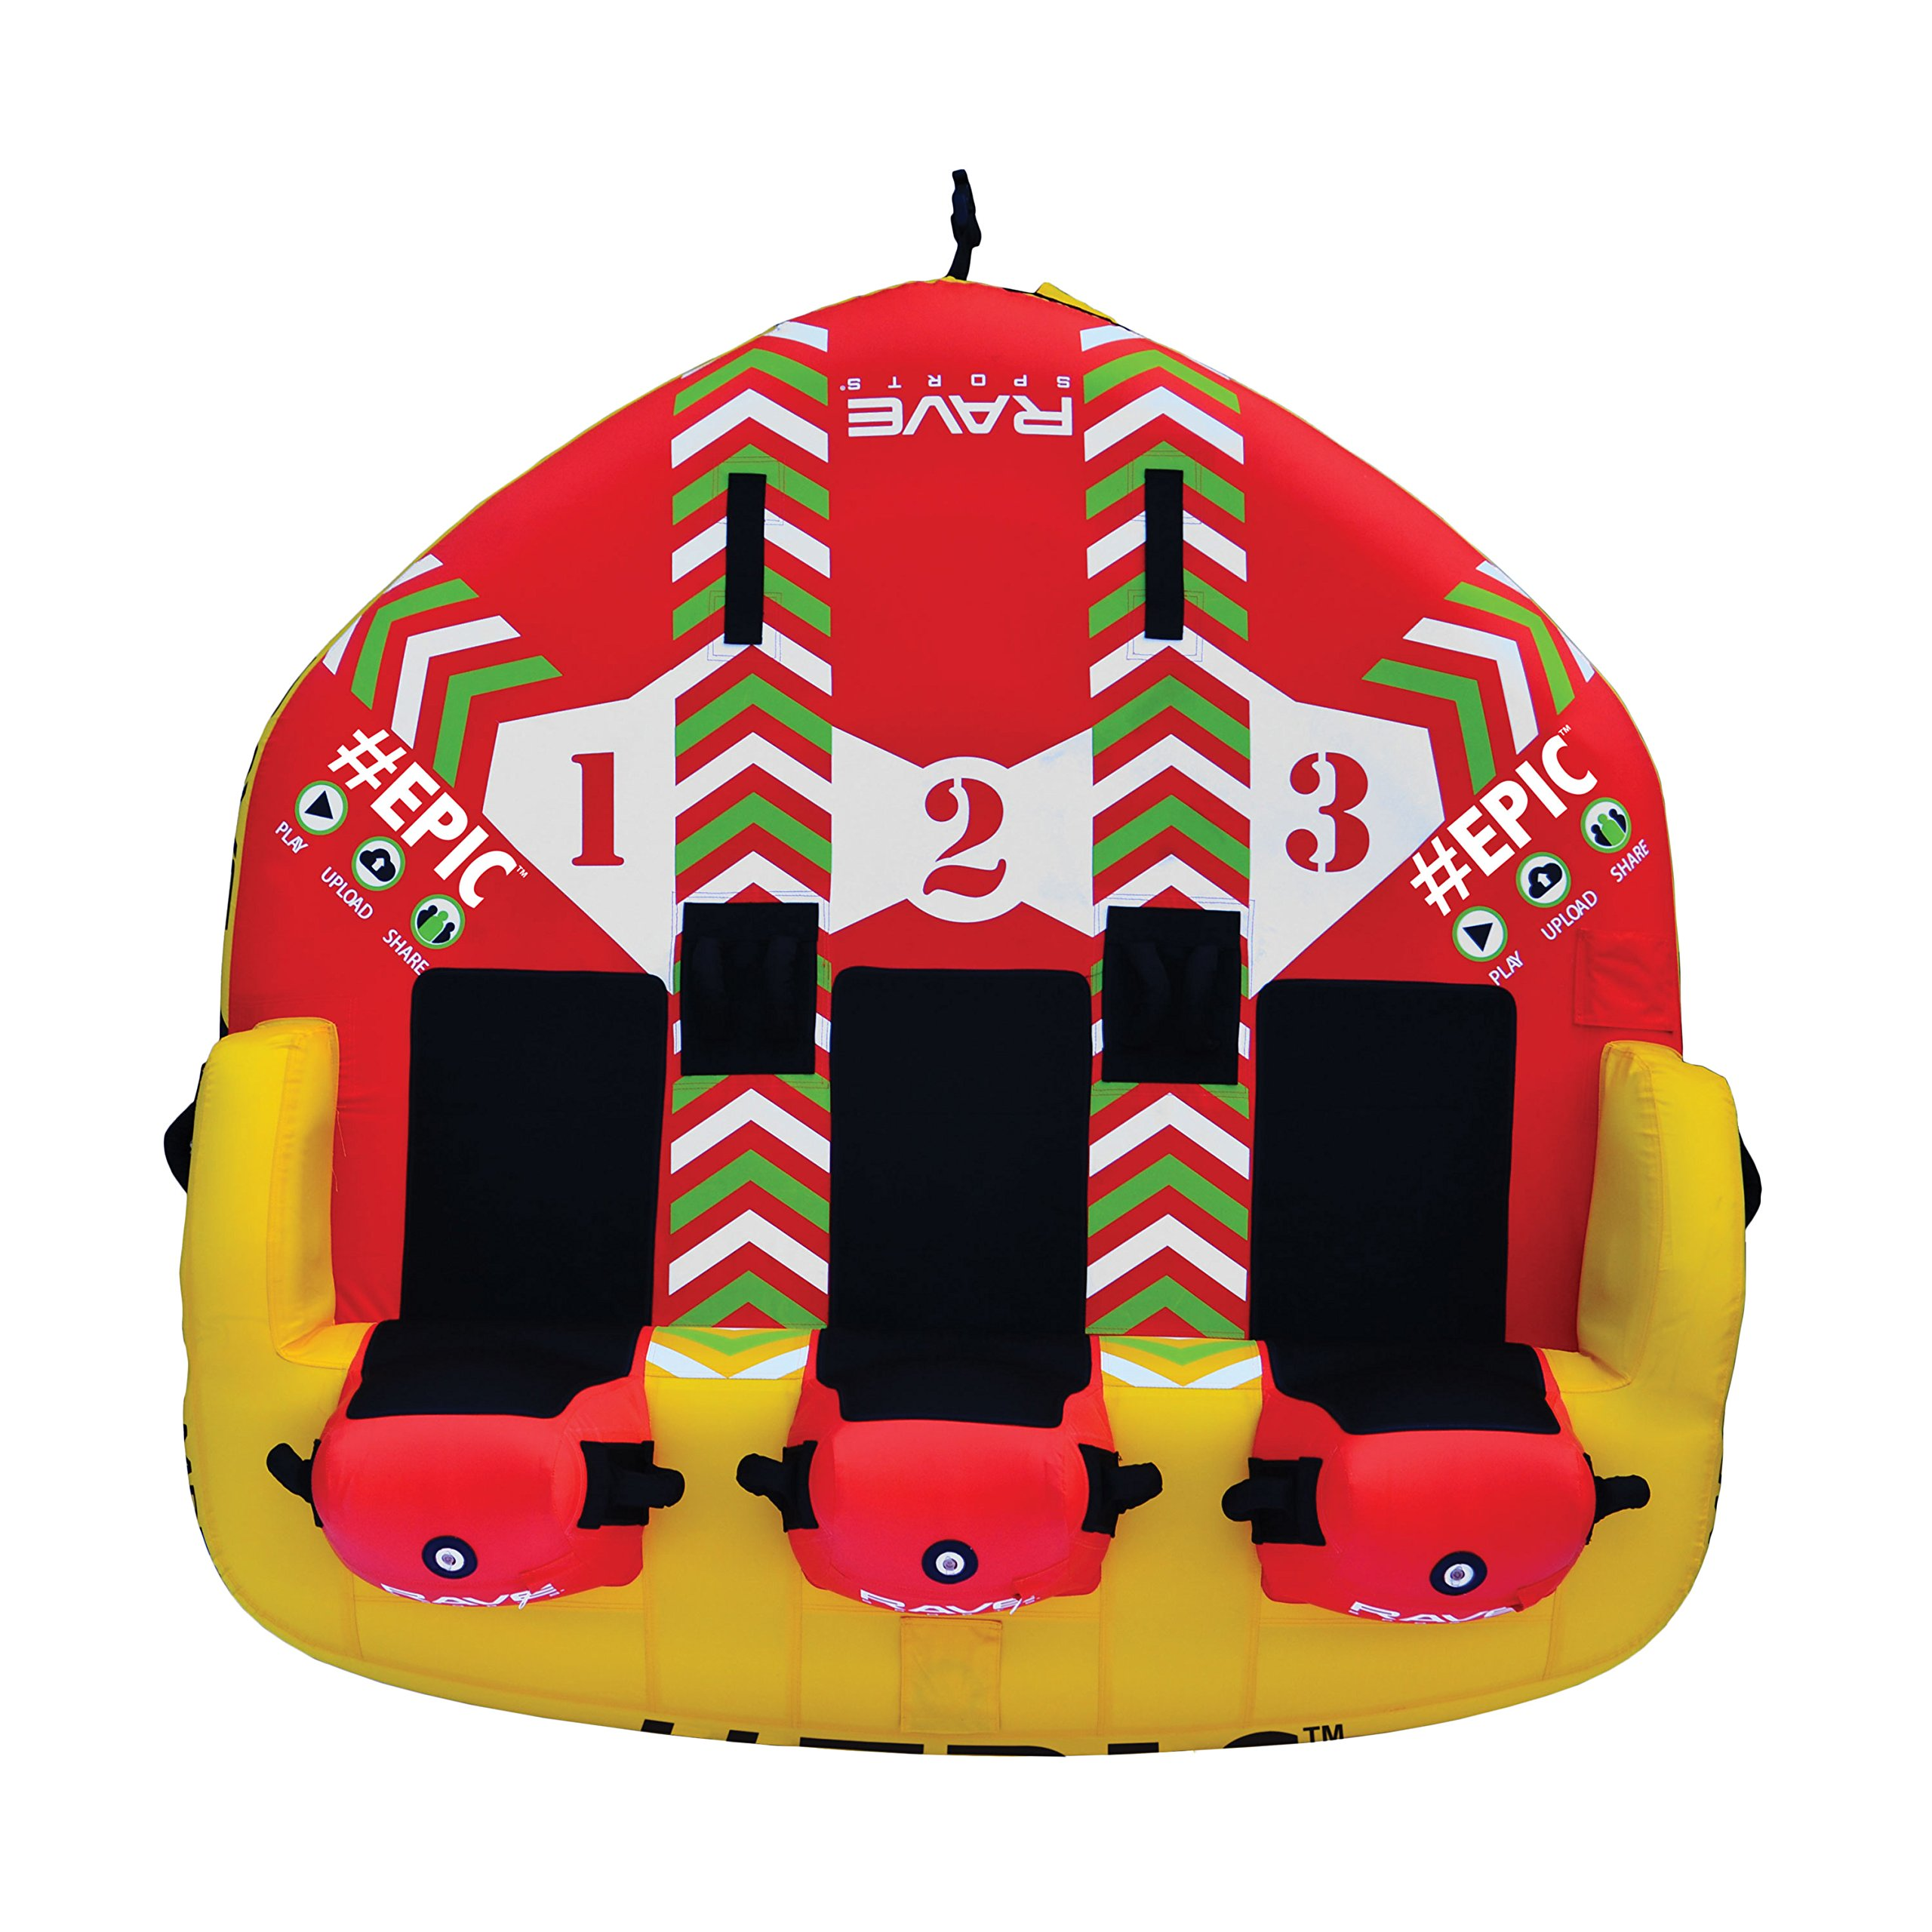 RAVE Sports 02645 #EPIC 3-Rider Towable , red , 78'' x 77'' x 34'' by RAVE Sports